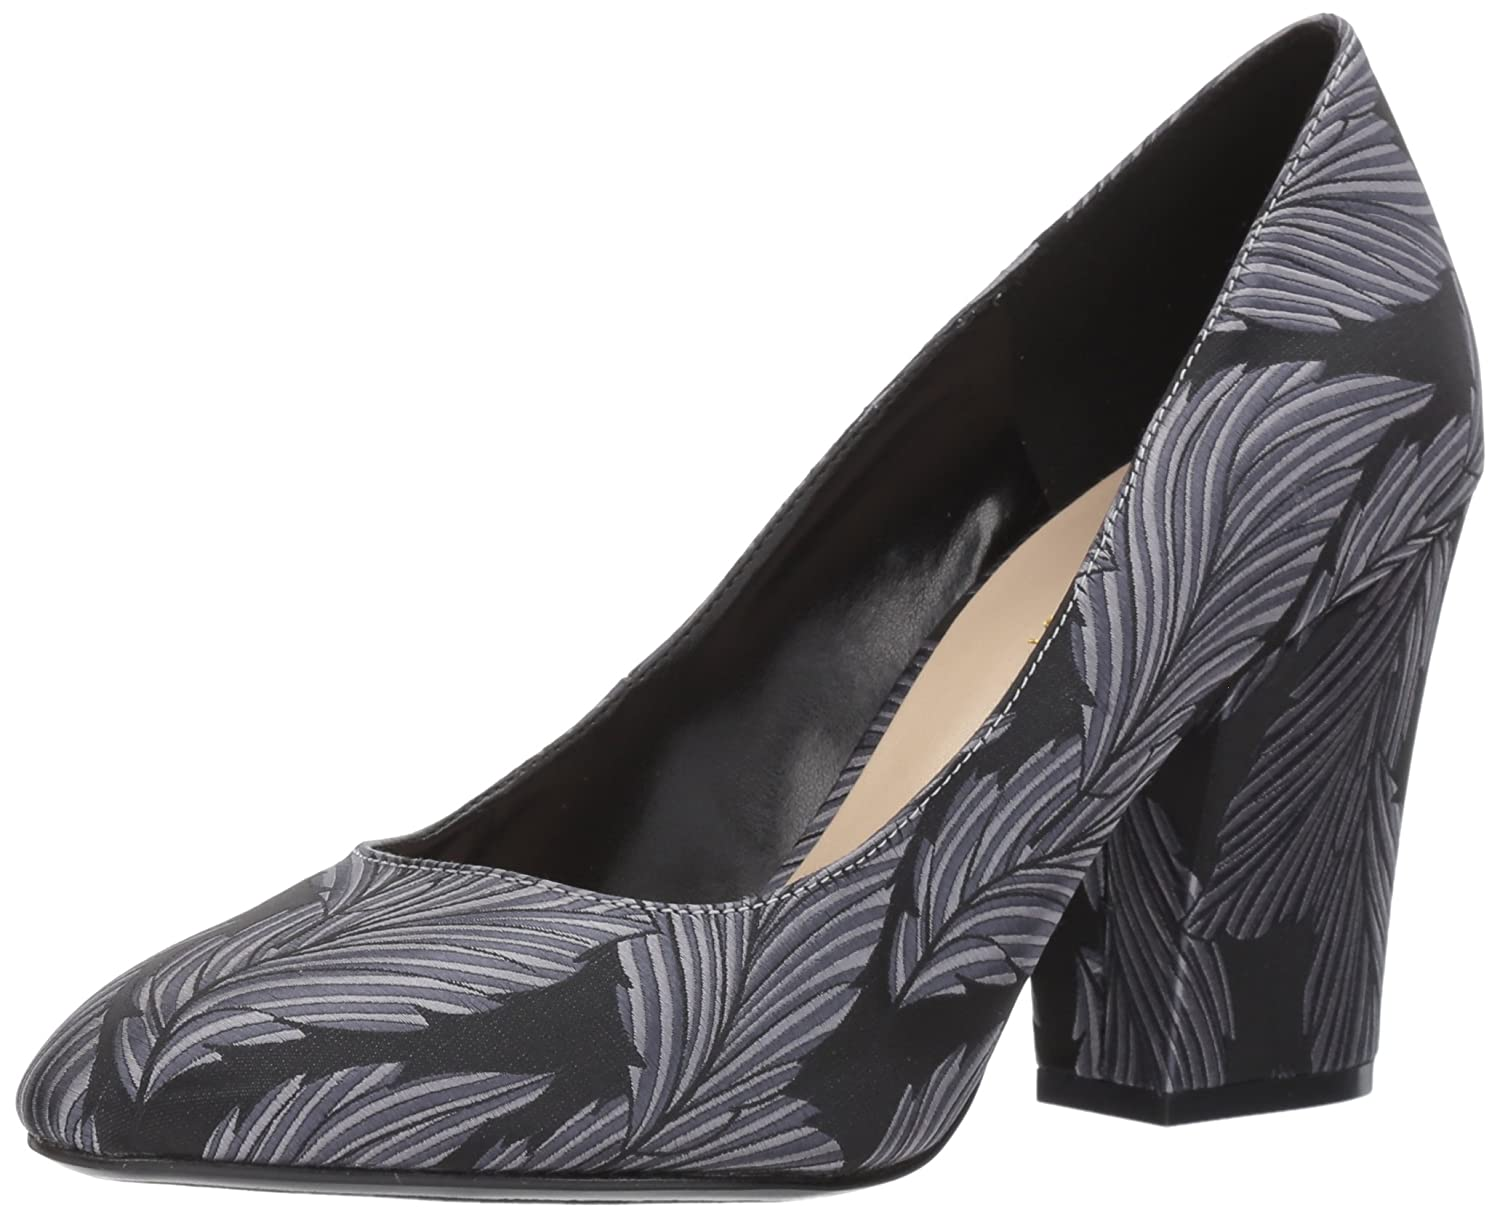 Nine West 8 Women's Scheila Pump B06VV8F5JH 8 West B(M) US|Black/Silver Feather Print bd2a18